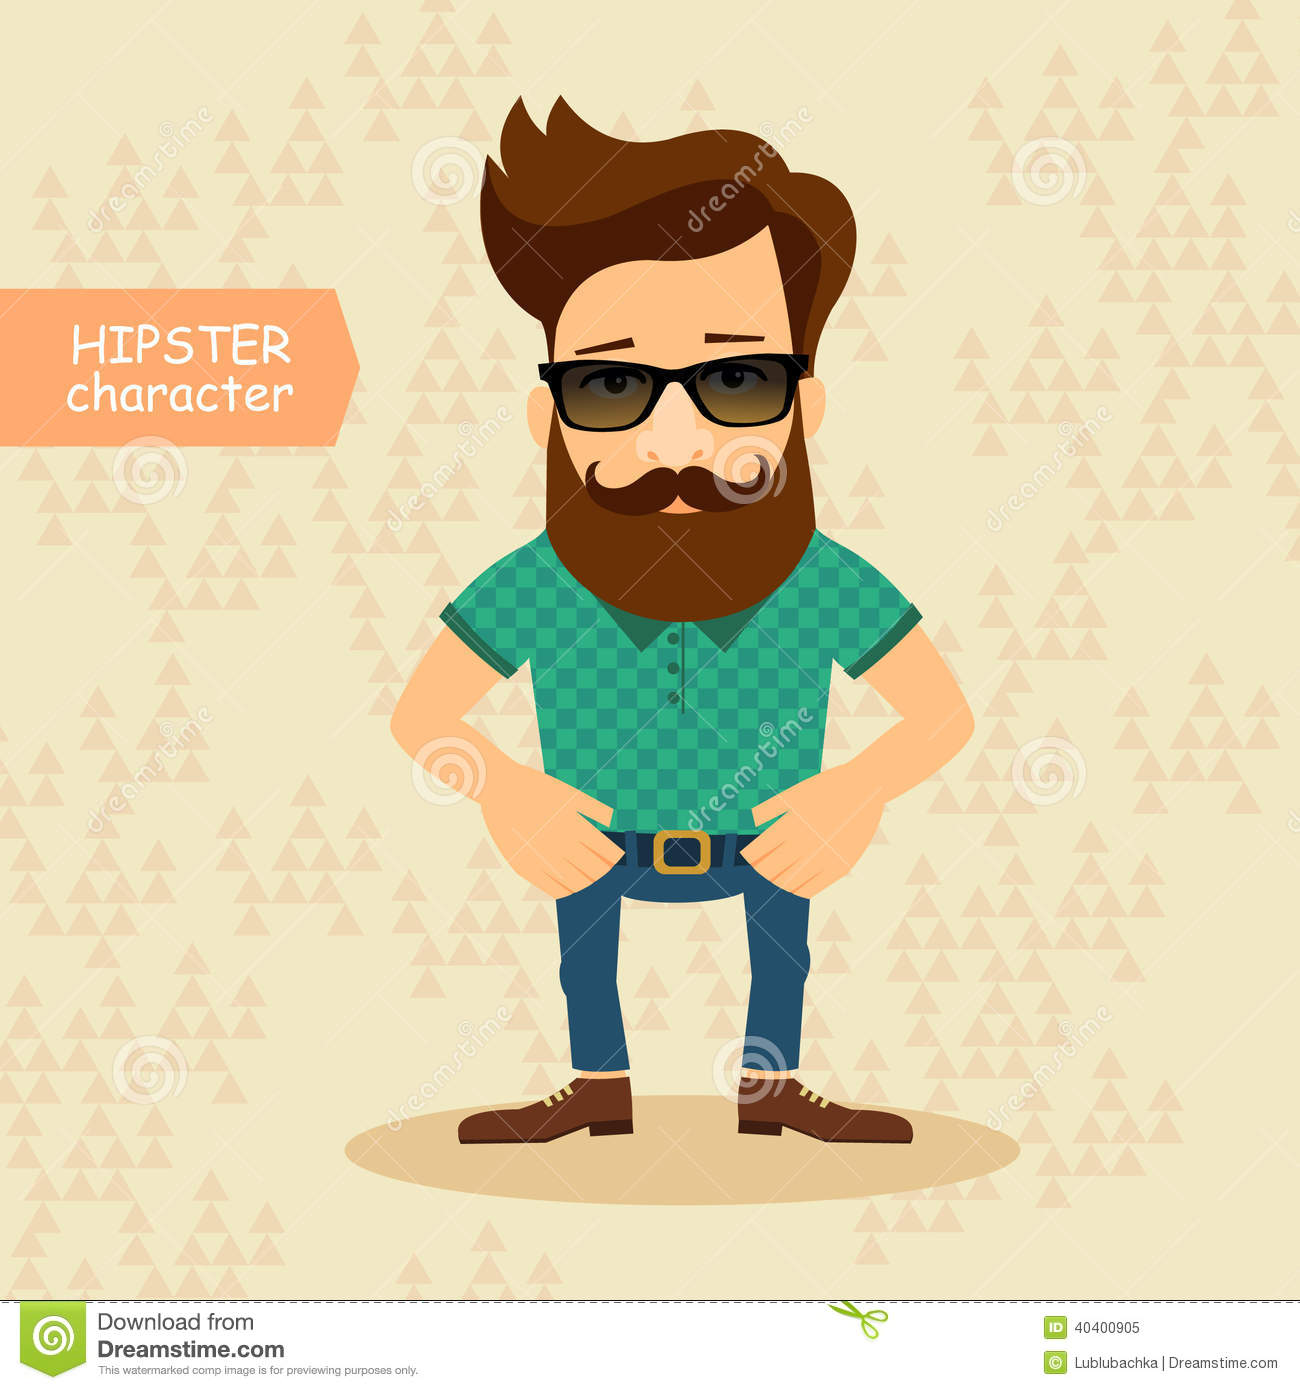 hipster cartoon character vintage fashion style vector